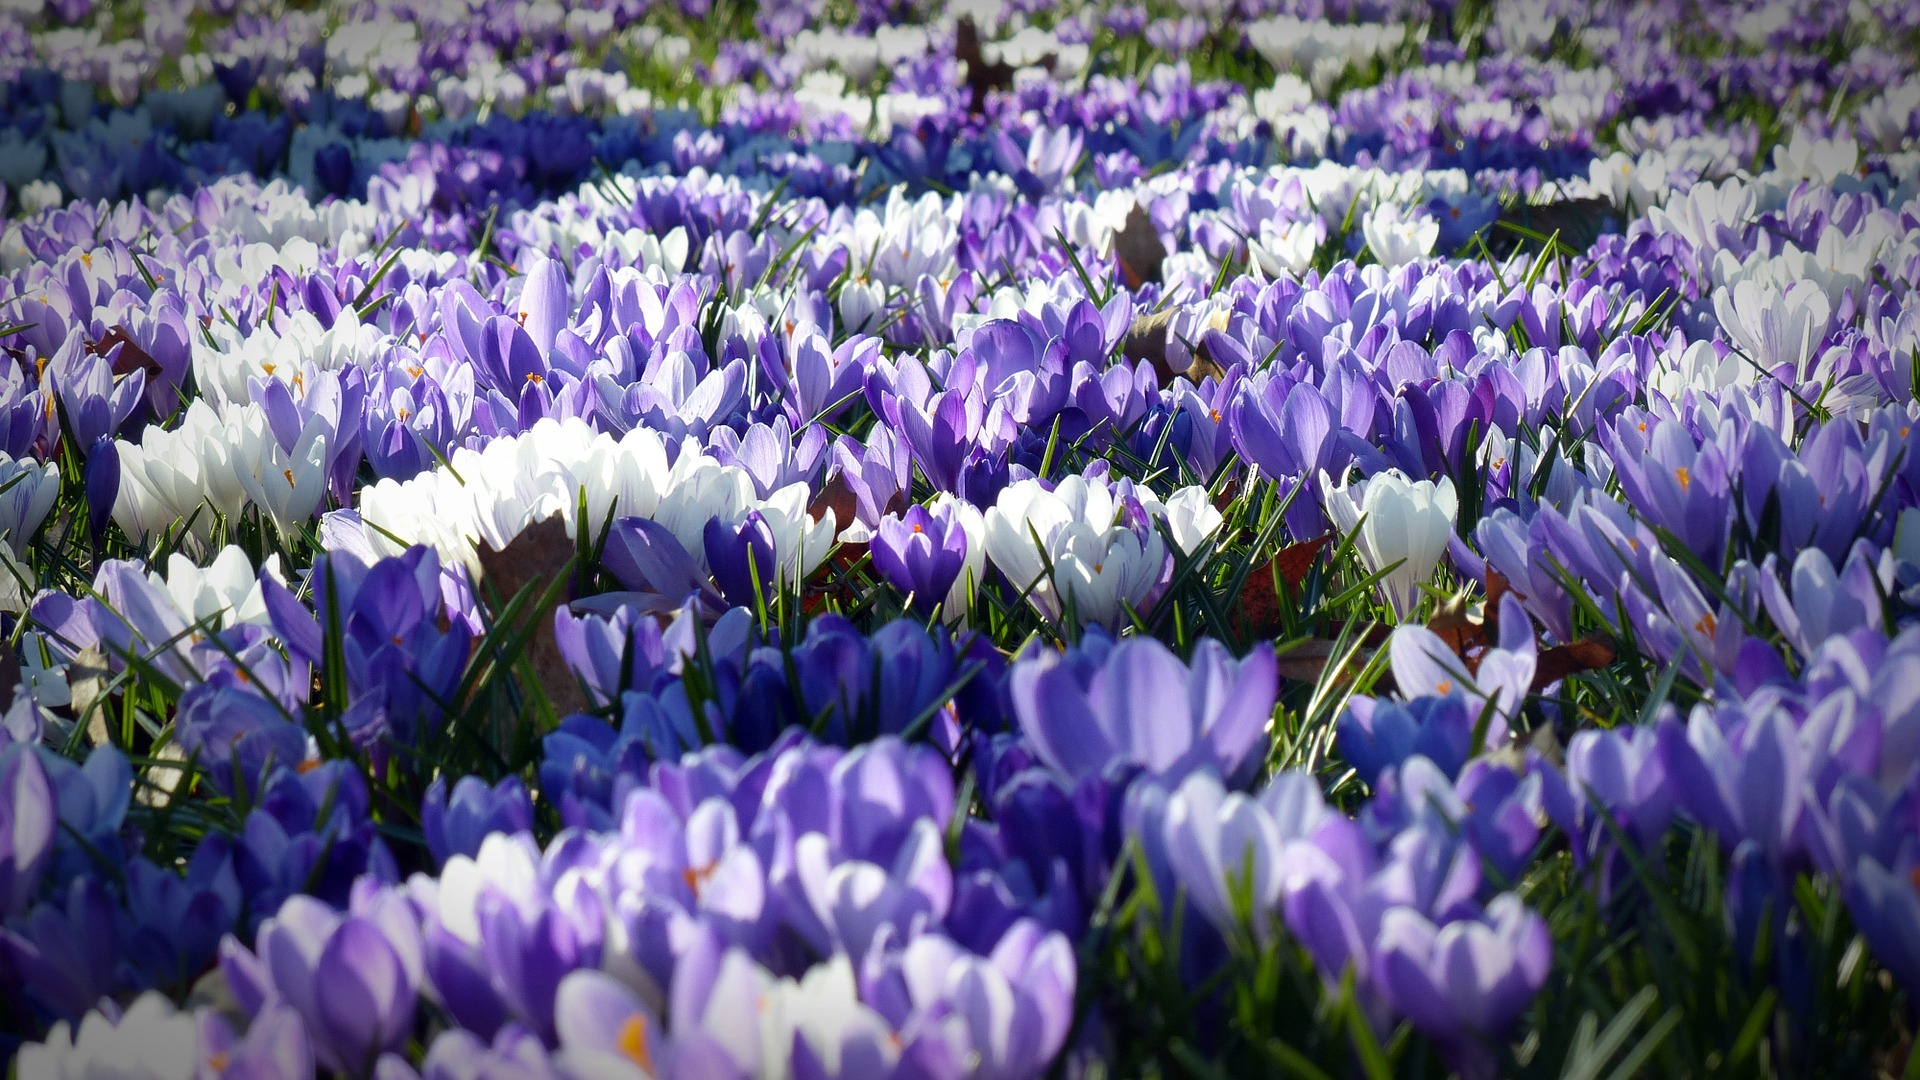 crocus-Fatherheart - France